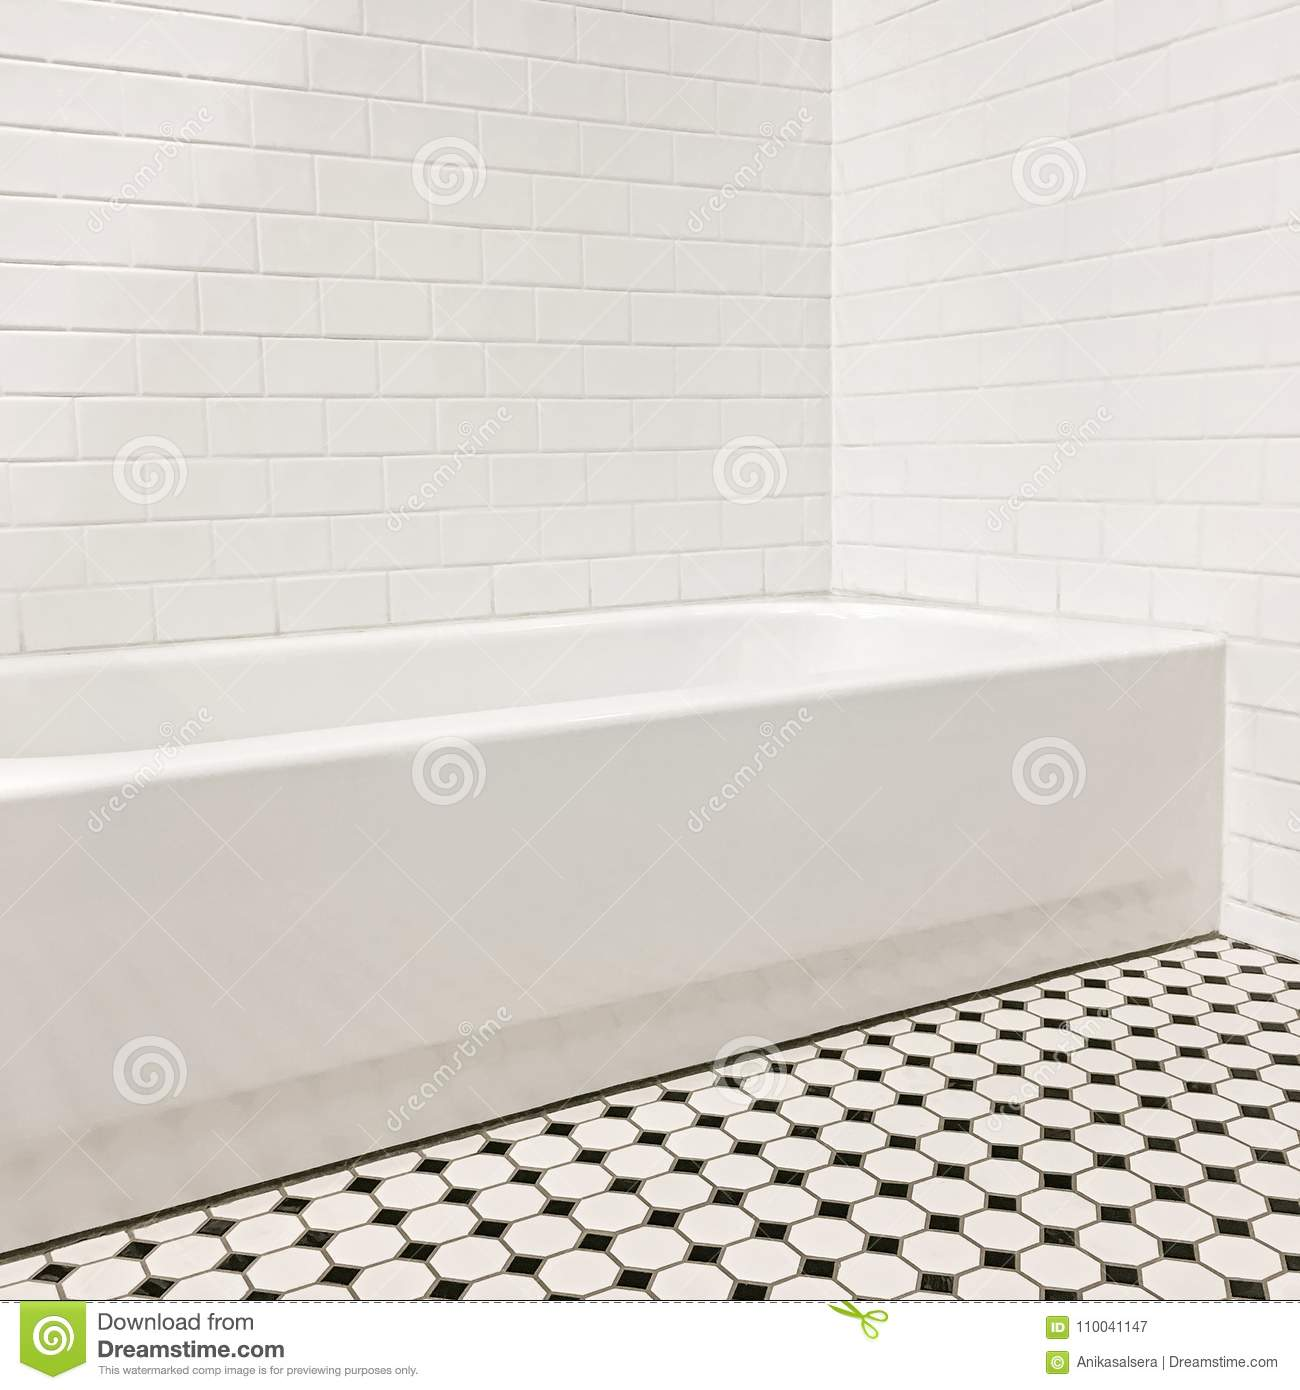 New Bathroom With Ceramic Tile Walls And Floor Stock Image - Image ...